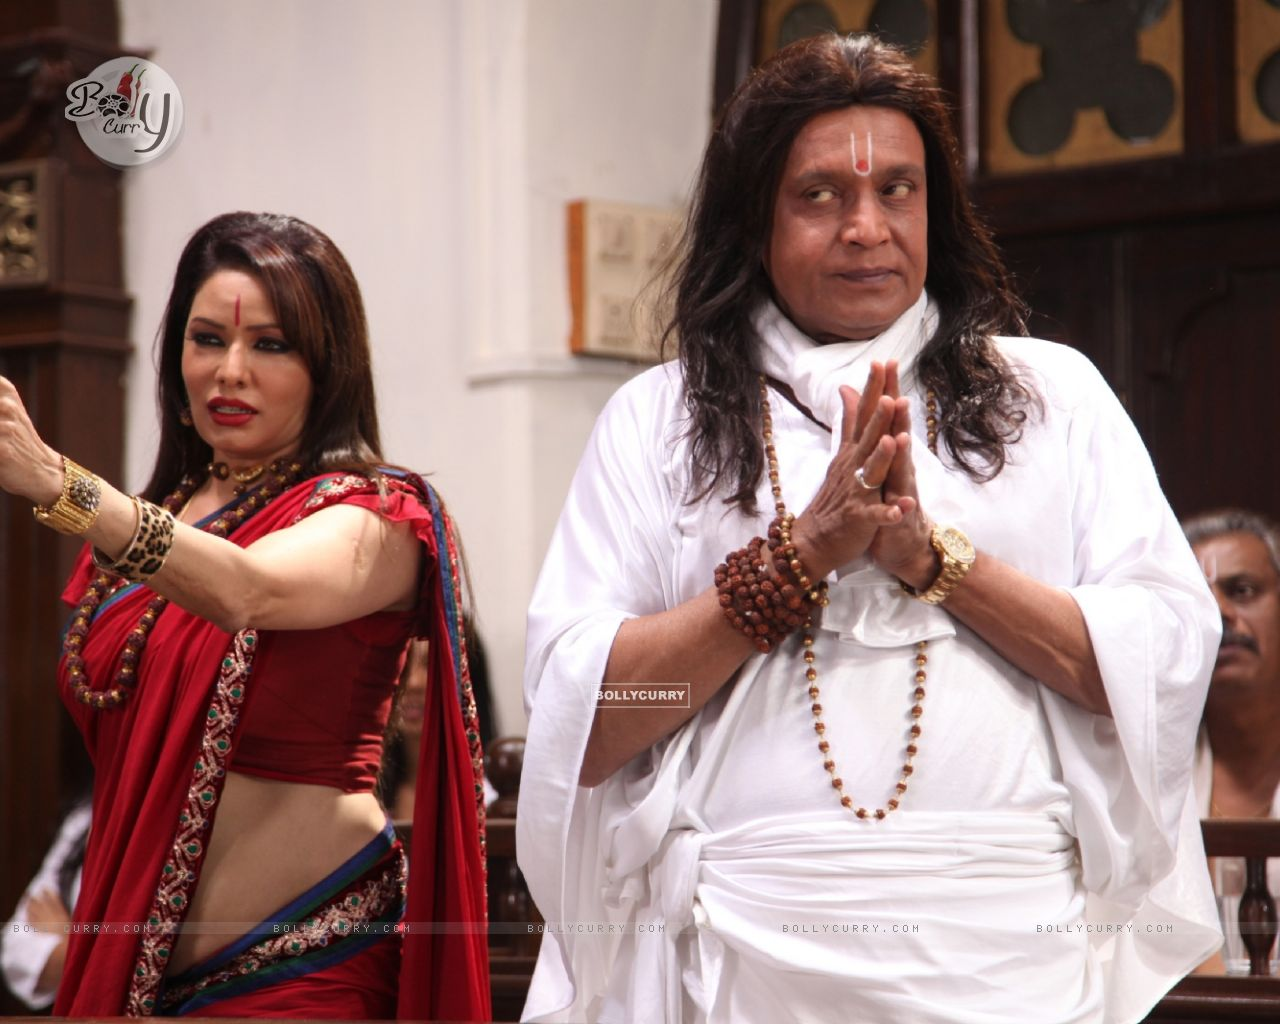 Poonam Jhawer and Mithun Chakraborty in OMG! Oh My God (226262) size:1280x1024